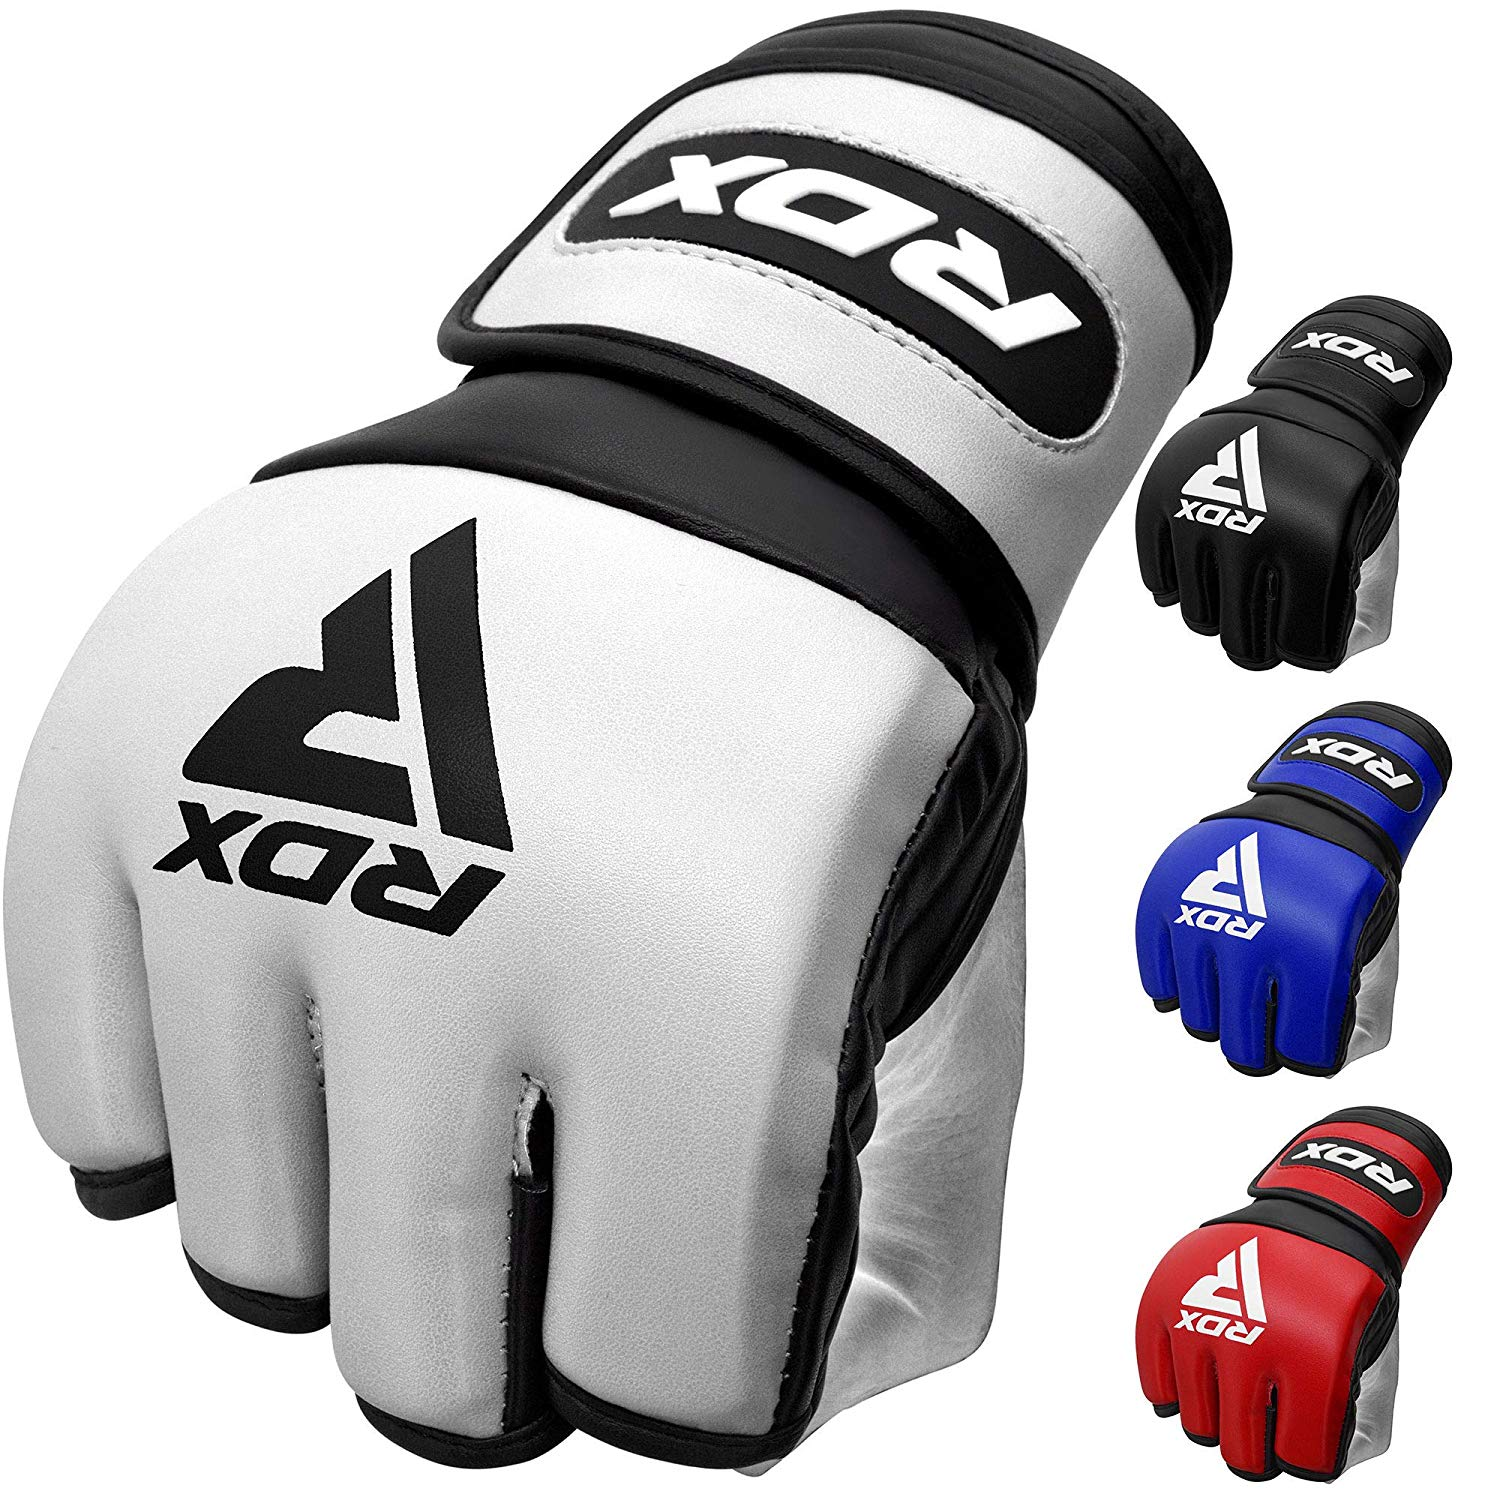 Muay Thai /& Kickboxing DXD MMA leather gloves X-Series for grappling hook Martial Arts Training Combat Sports D Punching bag Perfect gloves for Cage Fighting Cut Palm Maya Hide Leather Sparring Mitts